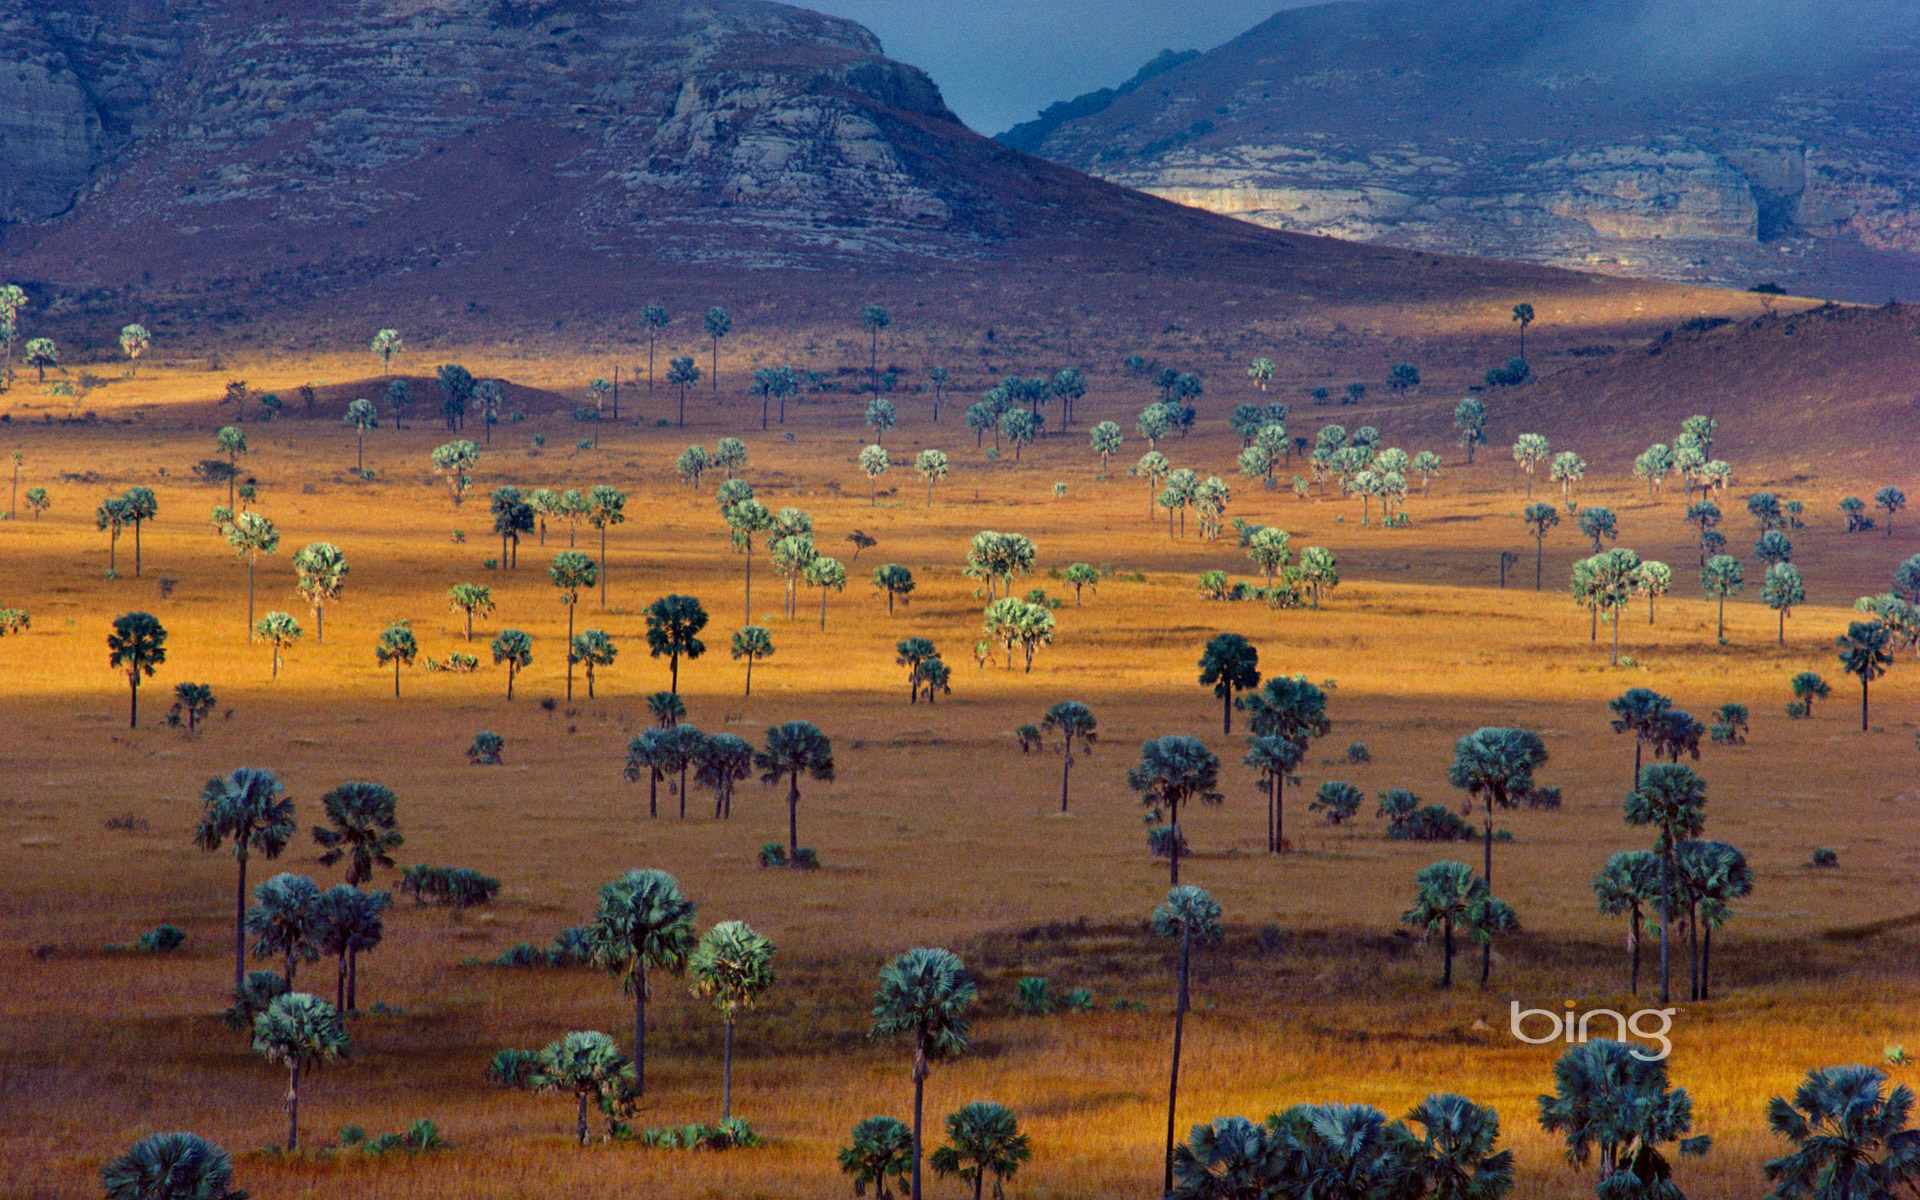 Palm trees growing on a savanna, Madagascar